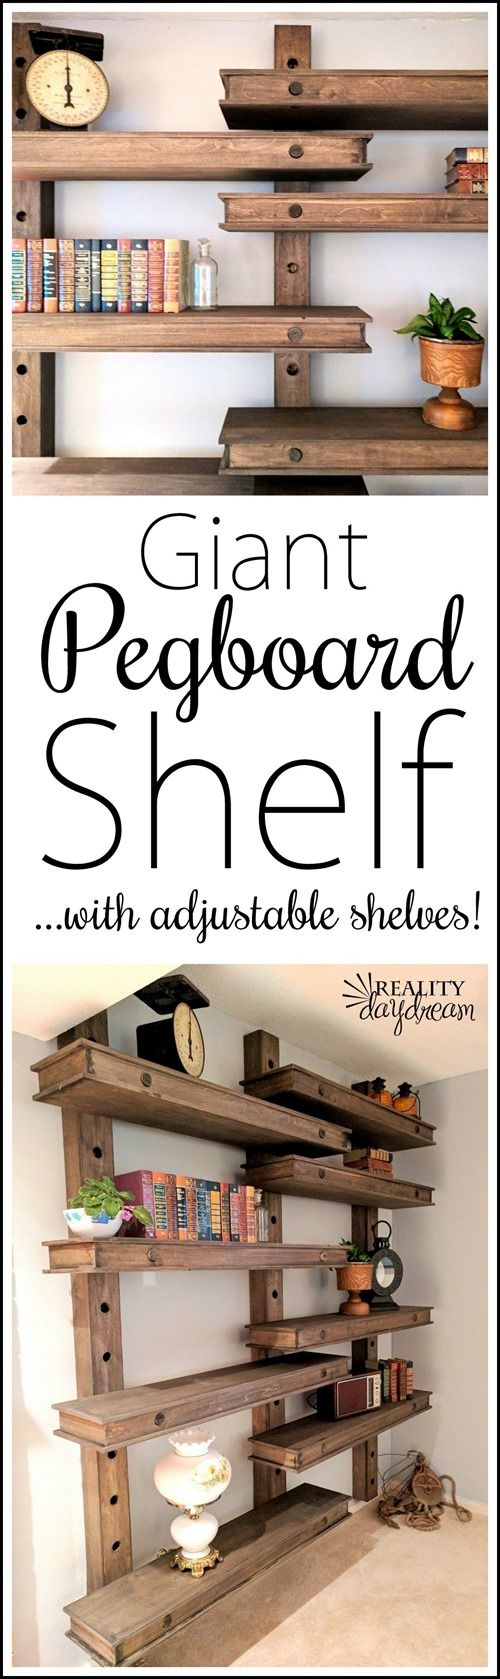 Oversized DIY Pegboard Shelving System ...so many different ways to customize! {Reality Daydream}